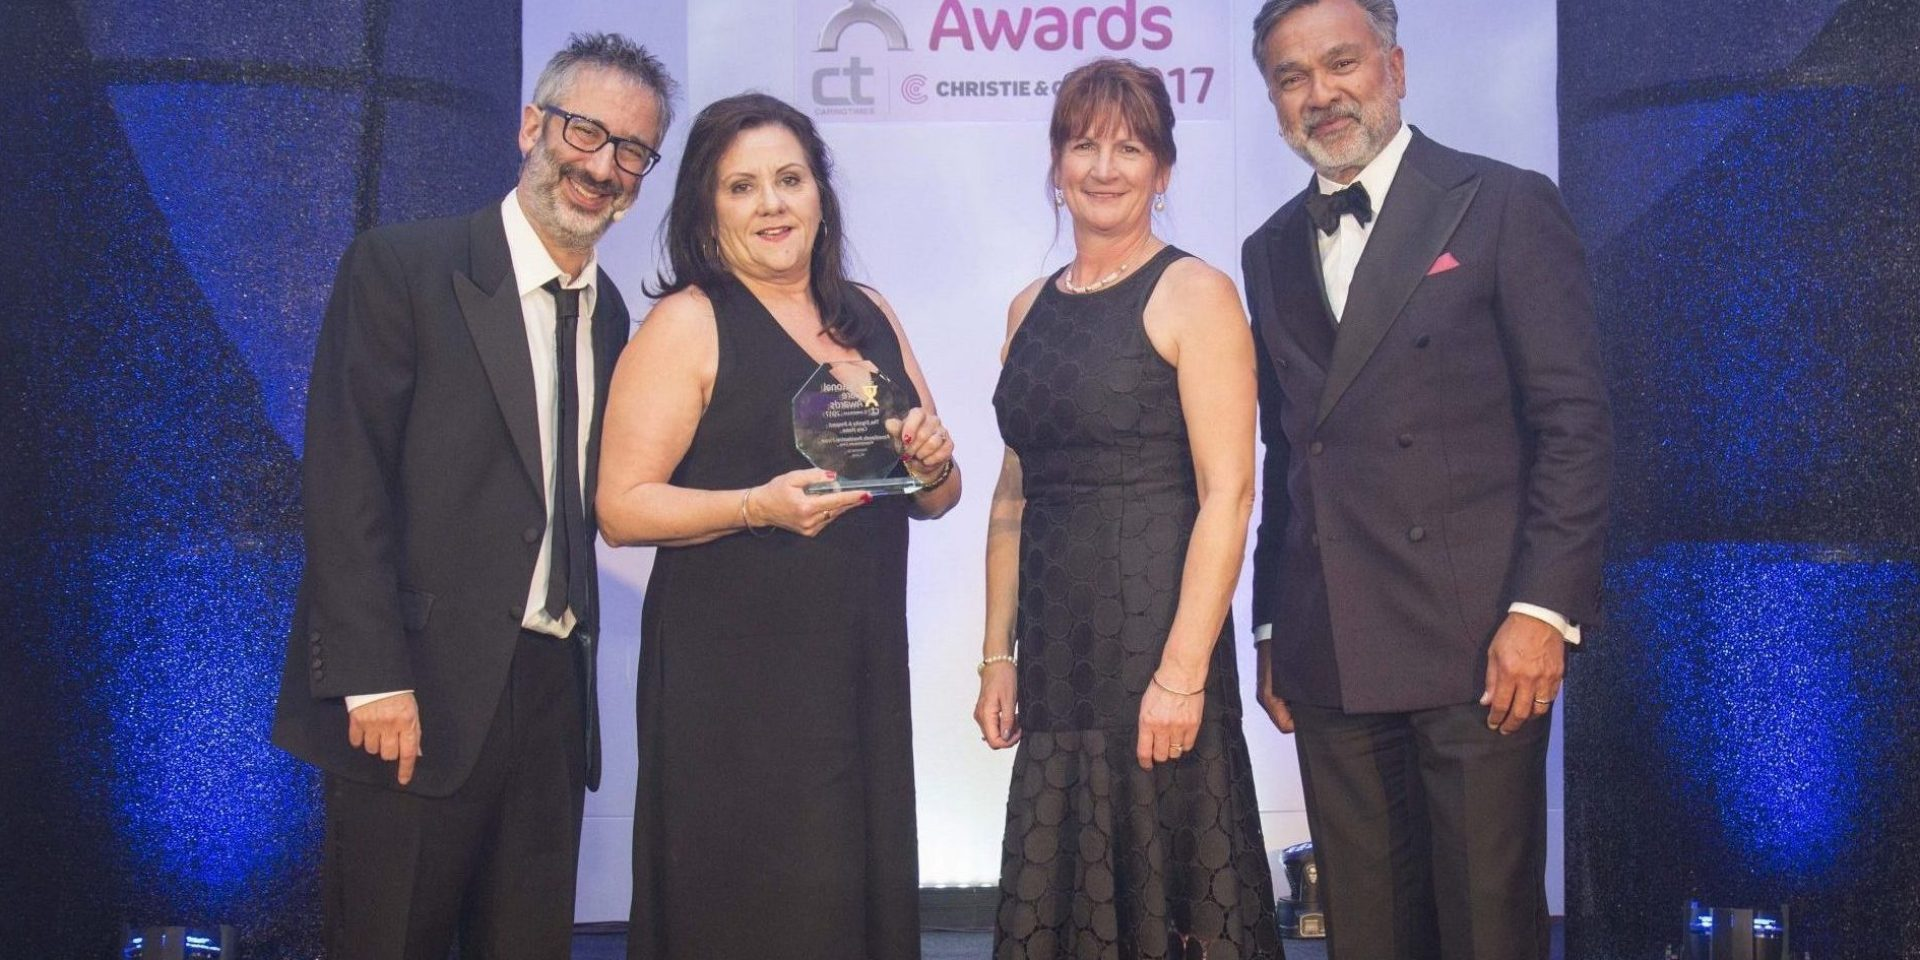 Broadlands Care Home in Oulton Broad Wins a National Care Award